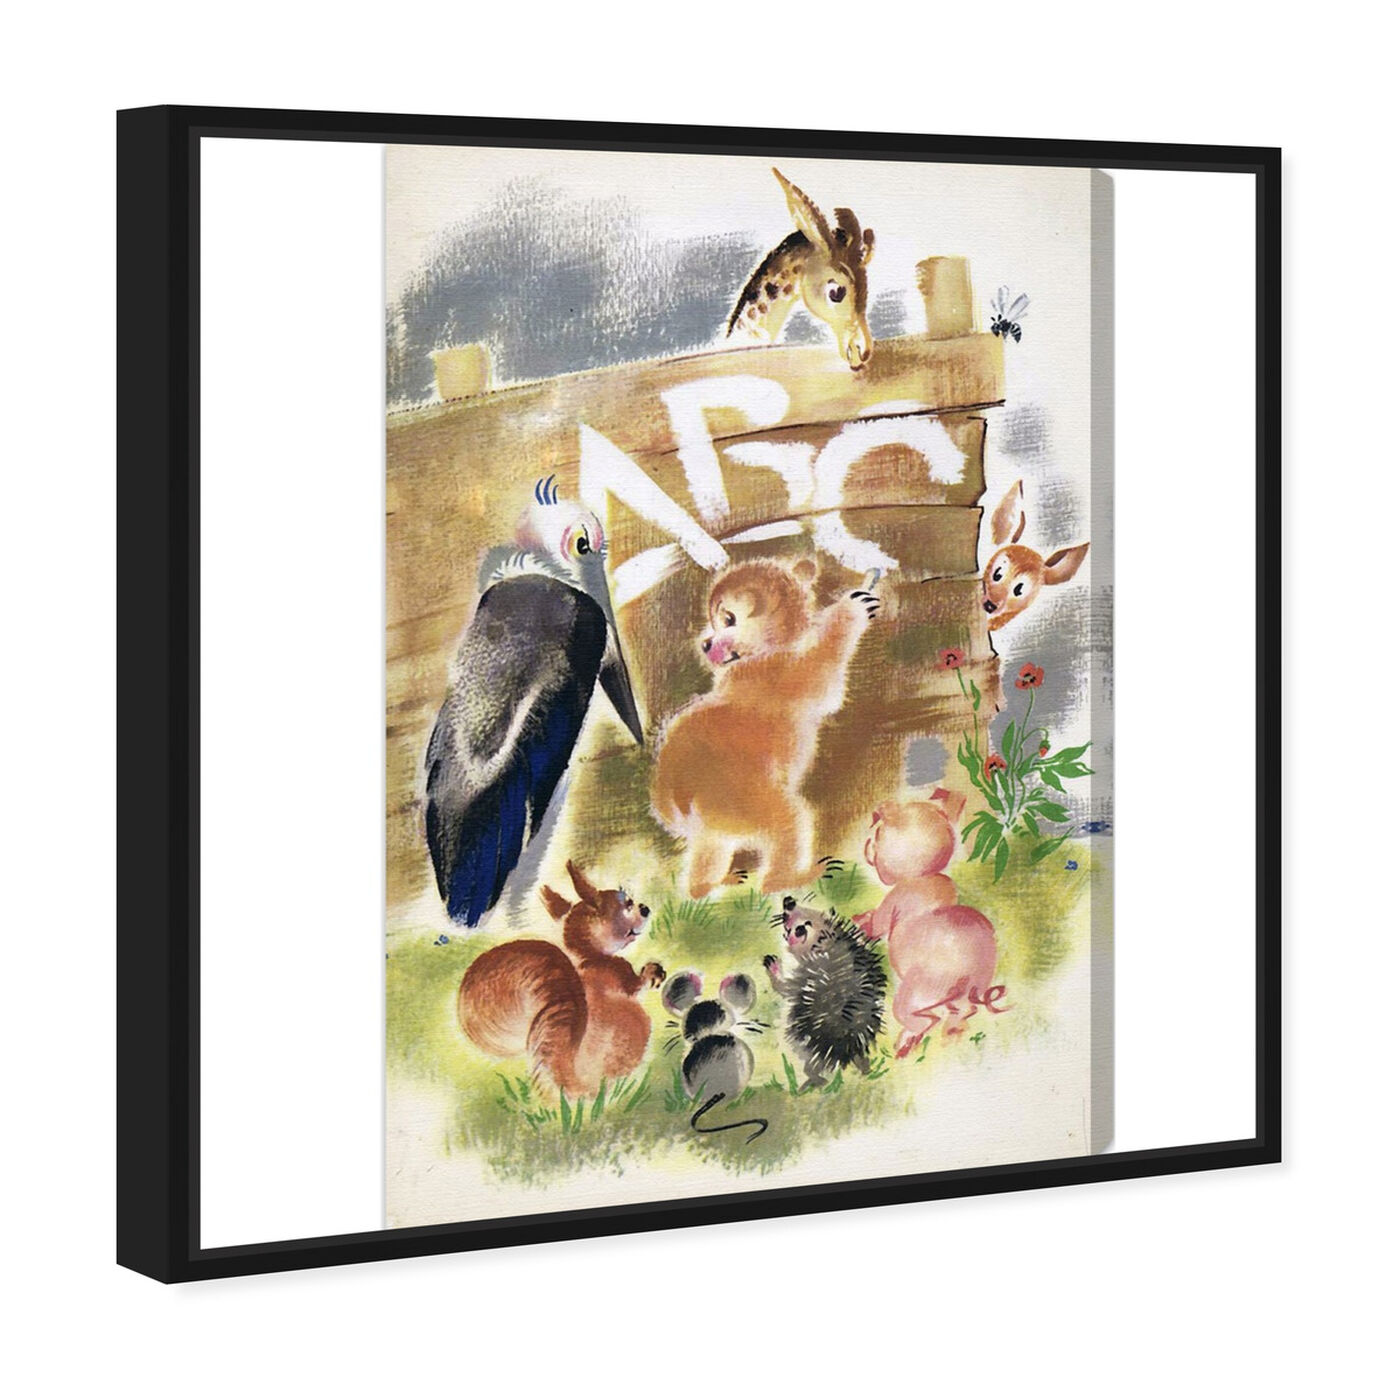 Angled view of Animal ABC featuring animals and baby animals art.